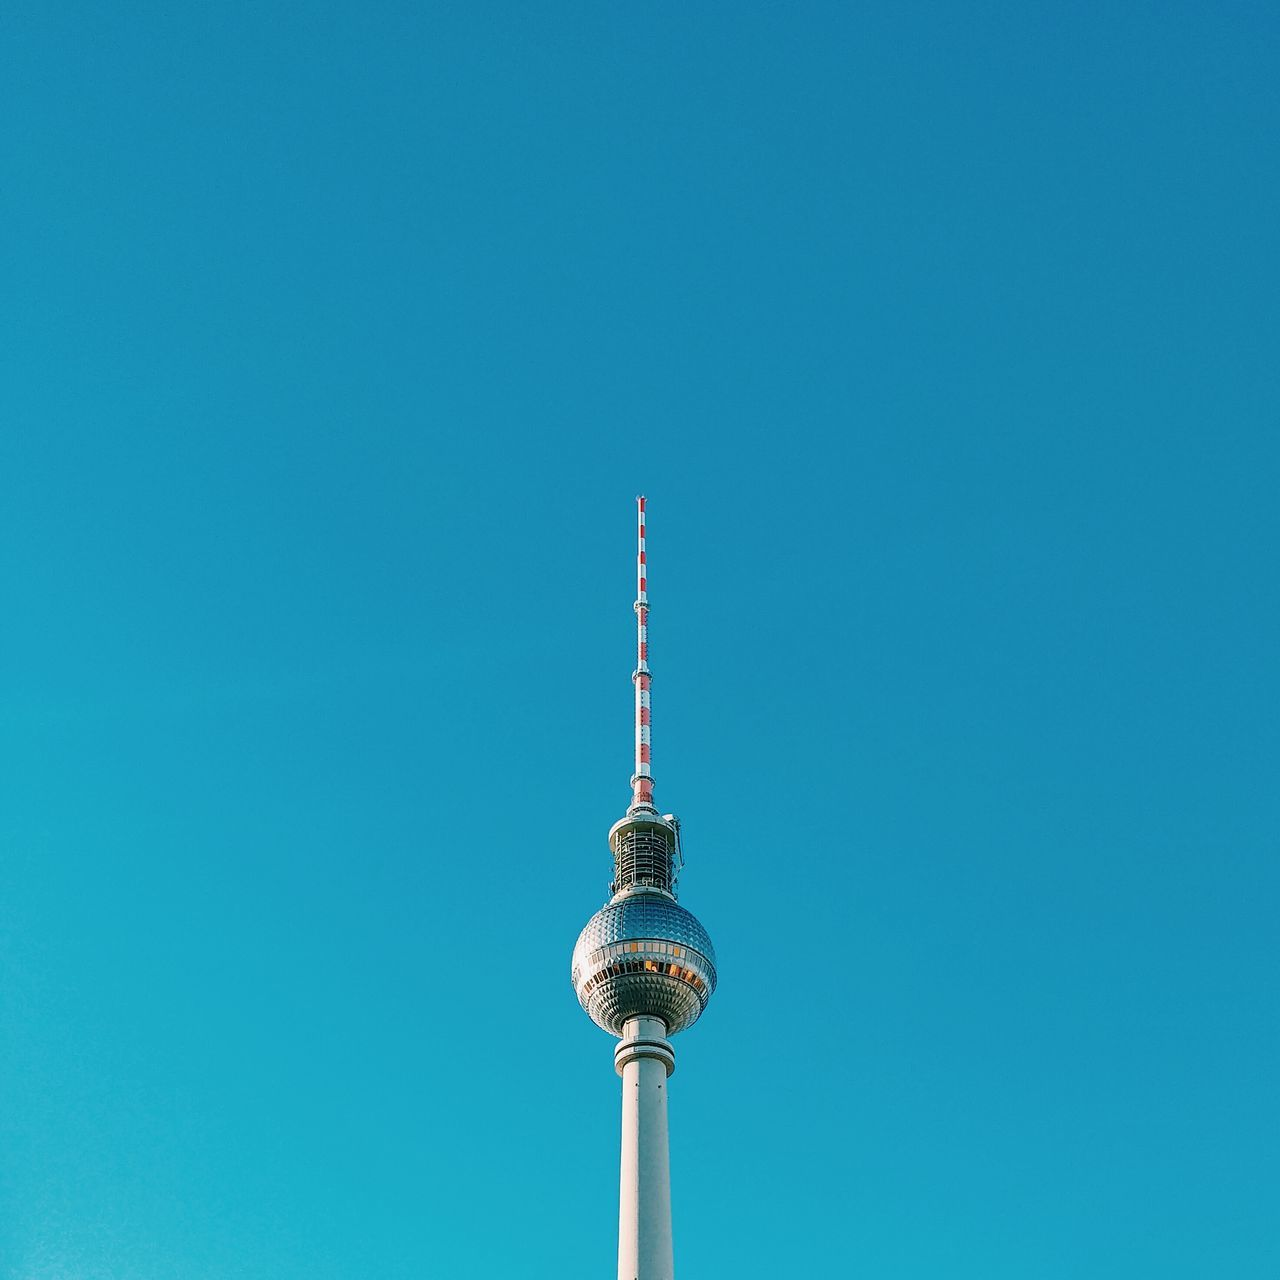 Beautiful stock photos of architecture, blue, communication, tower, low angle view